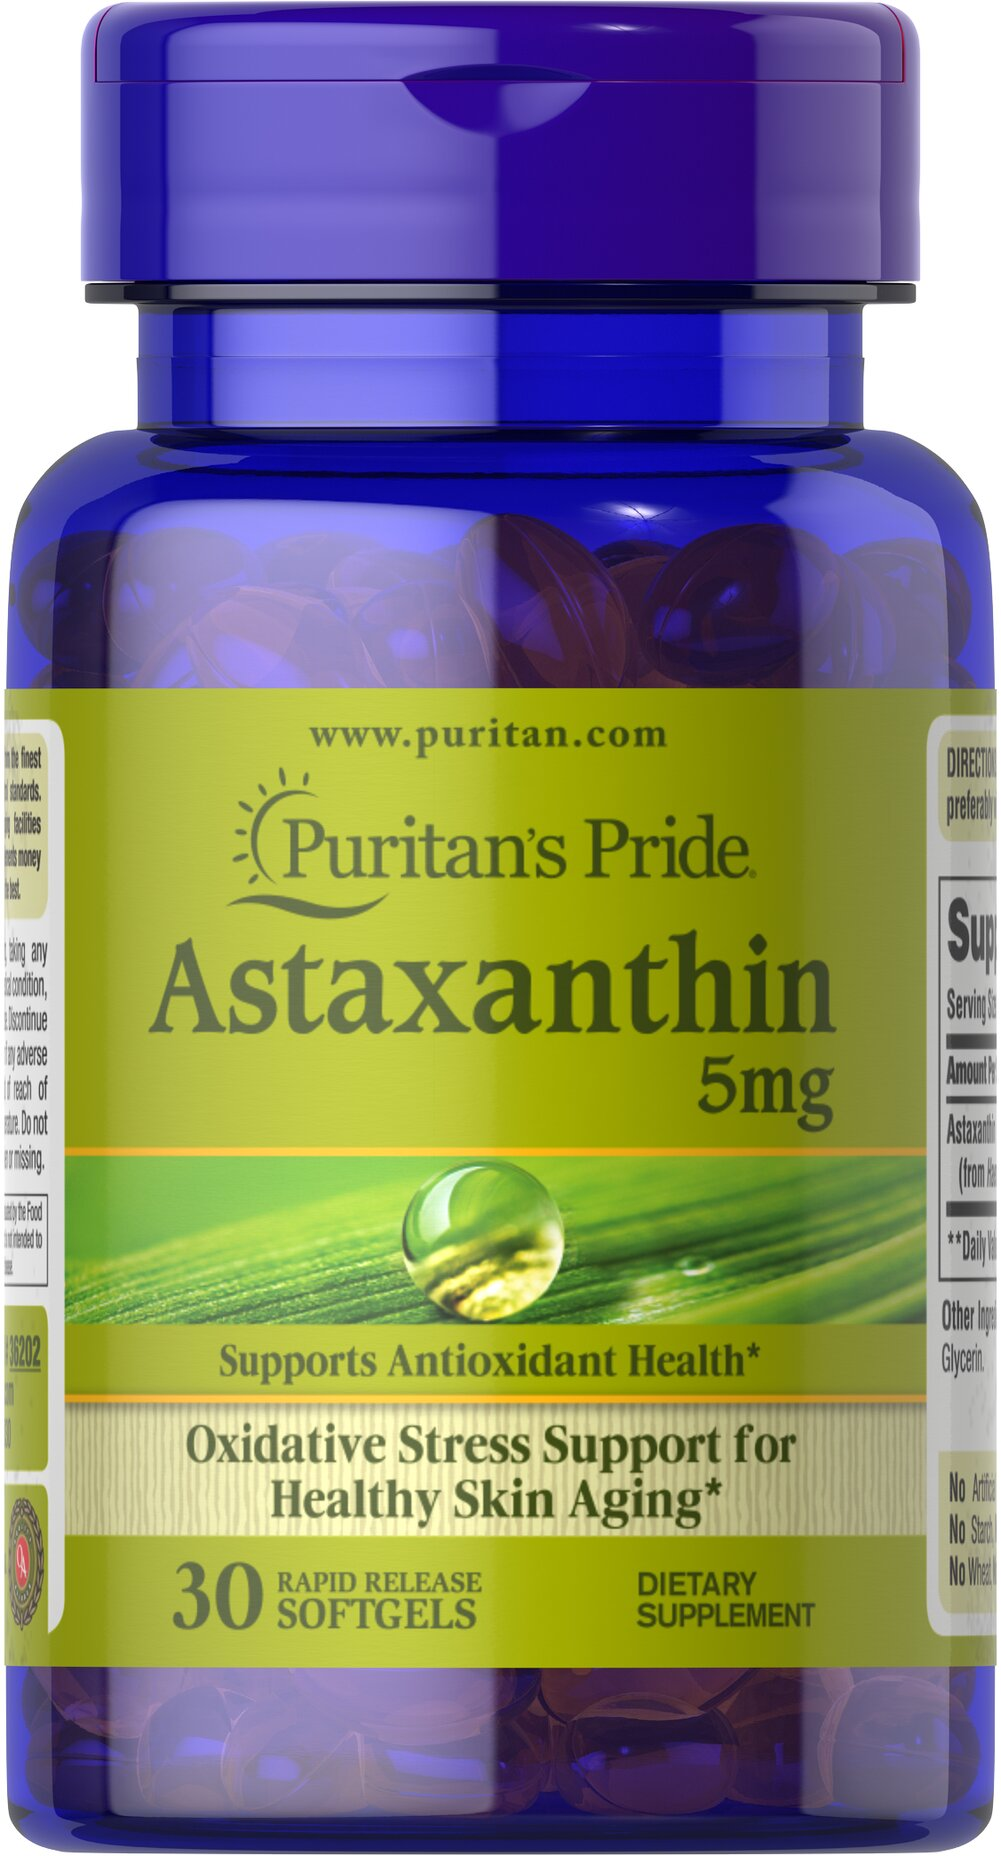 Astaxanthin 5 mg <p>Powerful Antioxidant**</p><p>Suited for Stressful Lifestyles**</p><p>Astaxanthin promotes antioxidant health, which helps fight the cell damaging free radicals that can lead to oxidative stress which may contribute to the premature aging of cells.**</p> 30 Softgels 5 mg $19.99